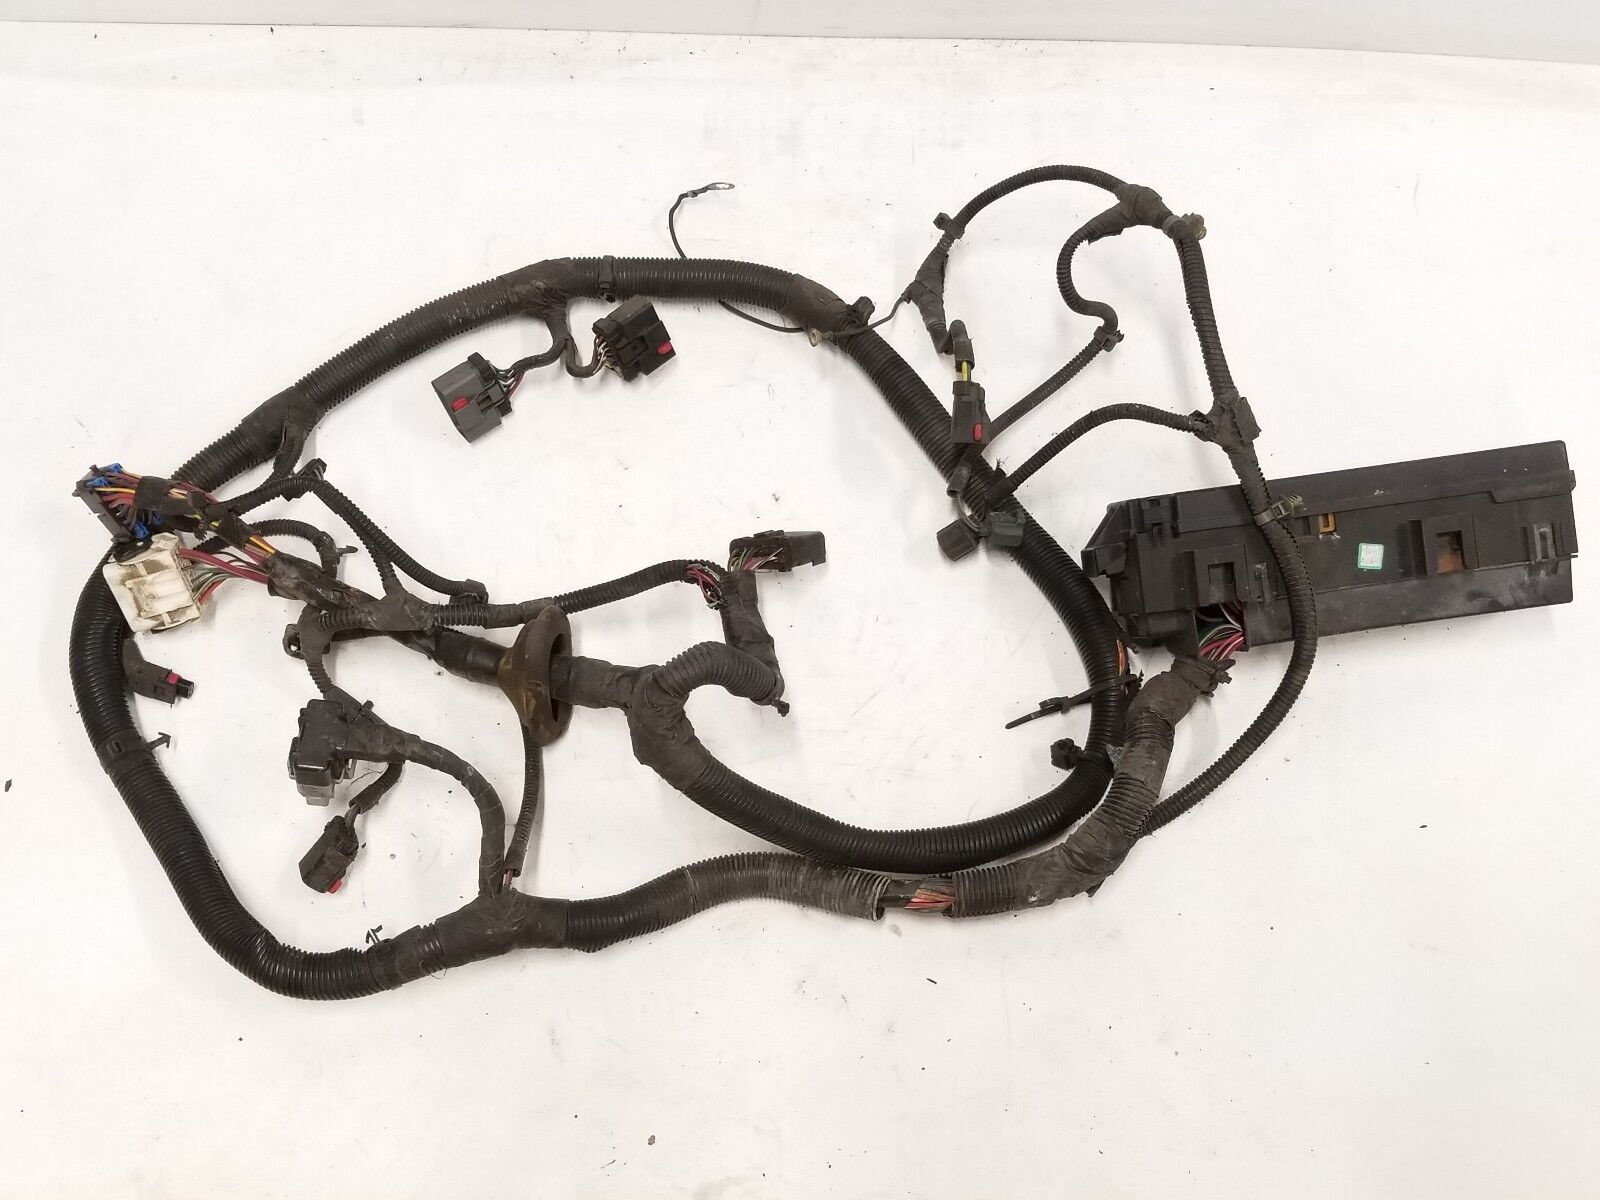 Wiring Harness 2004 Jeep Wrangler Electrical Diagrams Used Engines And Components For Sale Jk